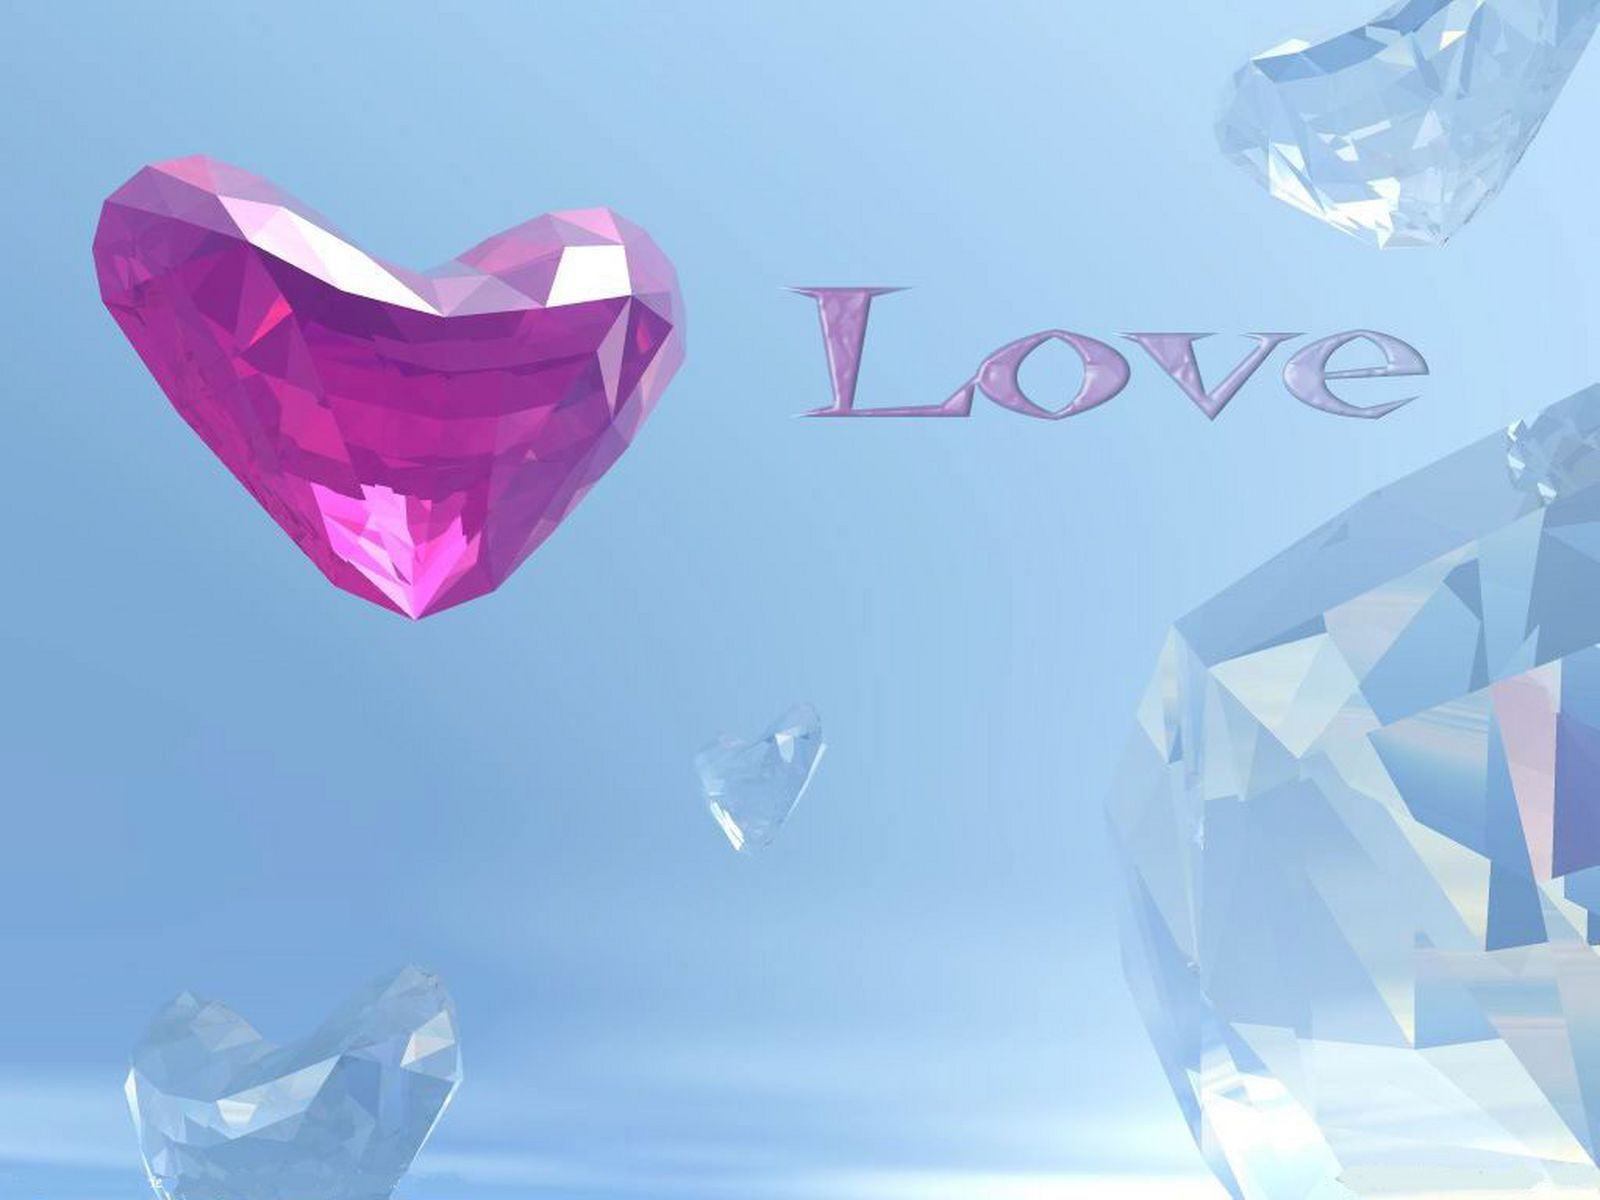 Love Desktop Wallpaper 3d : Love Wallpapers Hot Picures: Love Wallpaper Backgrounds